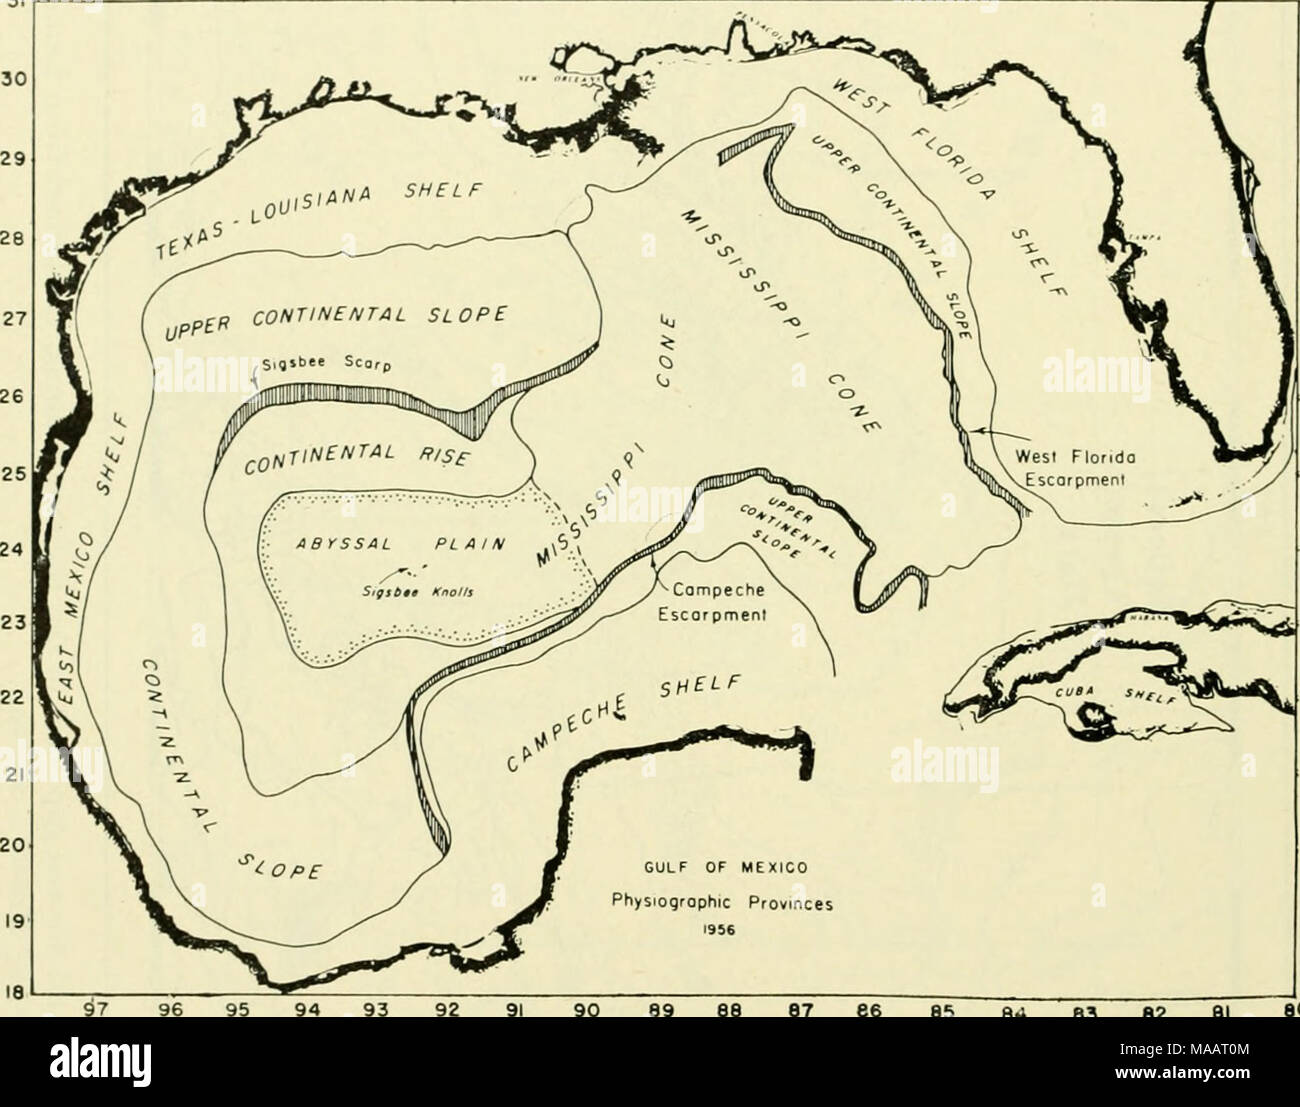 The earth beneath the sea history gulf of mexico physioqrophic the earth beneath the sea history gulf of mexico physioqrophic provinces 96 95 94 93 90 89 88 87 66 85 e i 83 82 81 80 fig 15 physiographic publicscrutiny Images